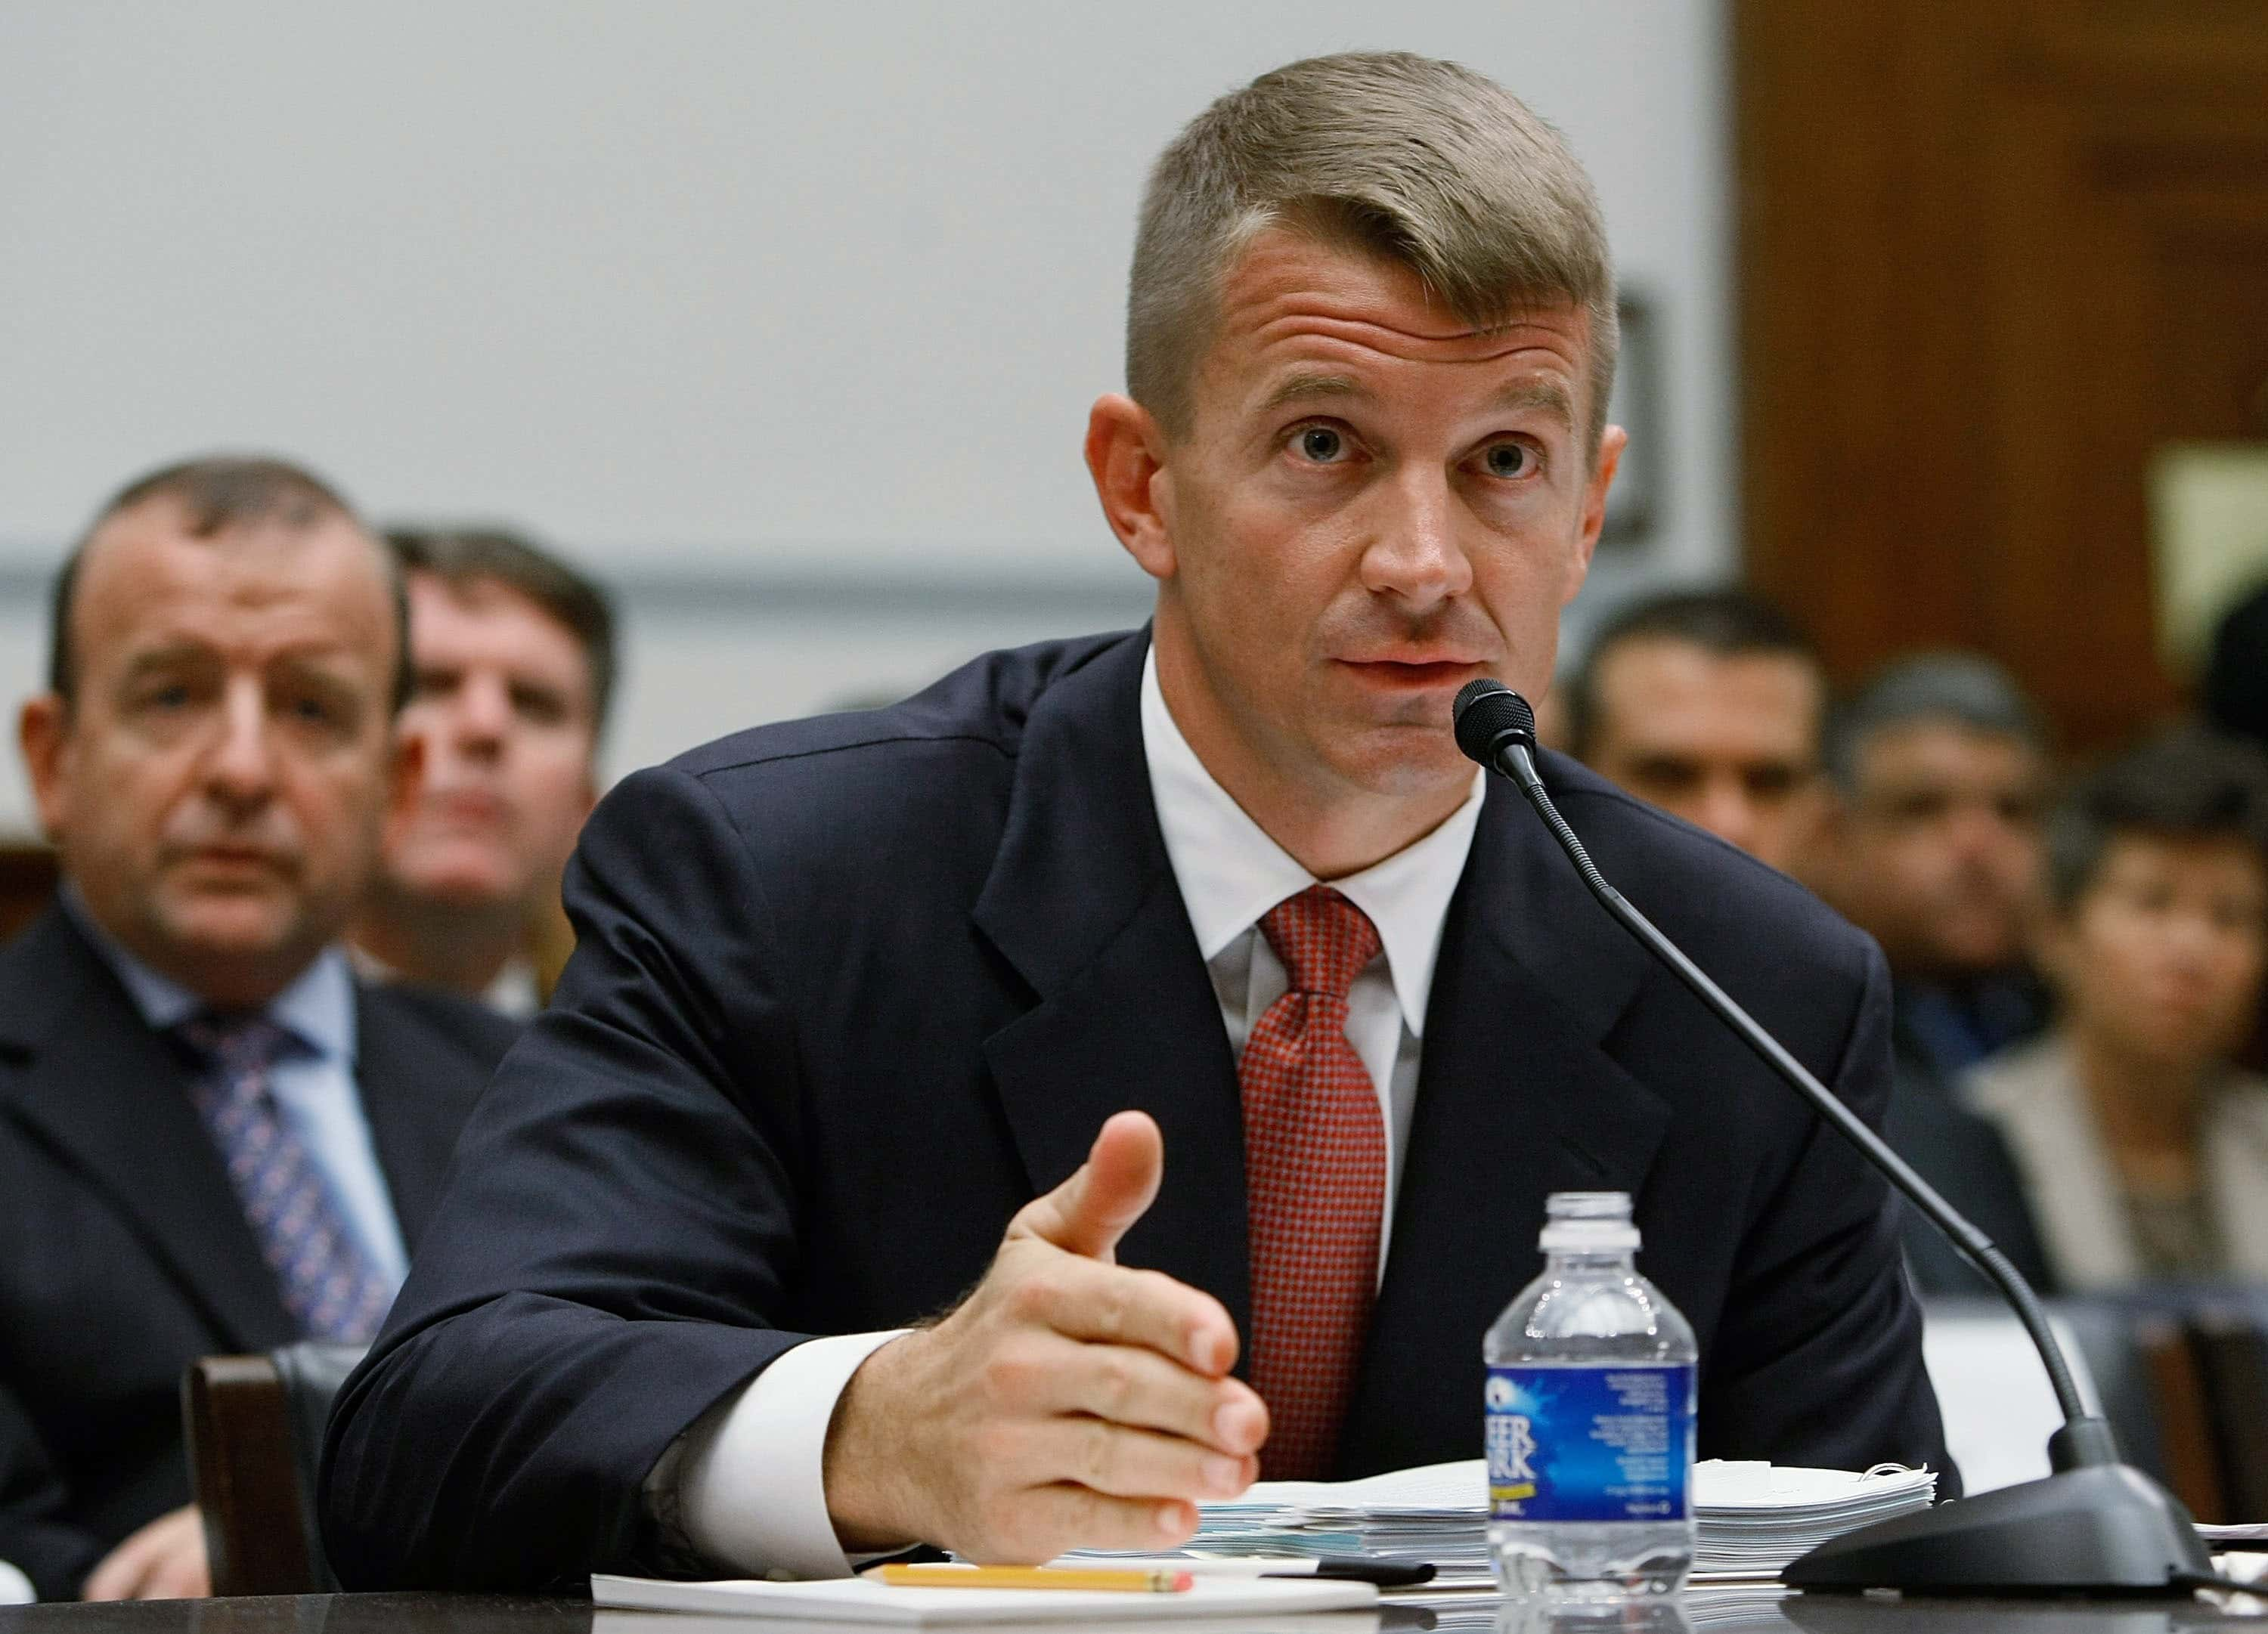 What is Erik Prince's net worth Trump ally who violated UN arms ...